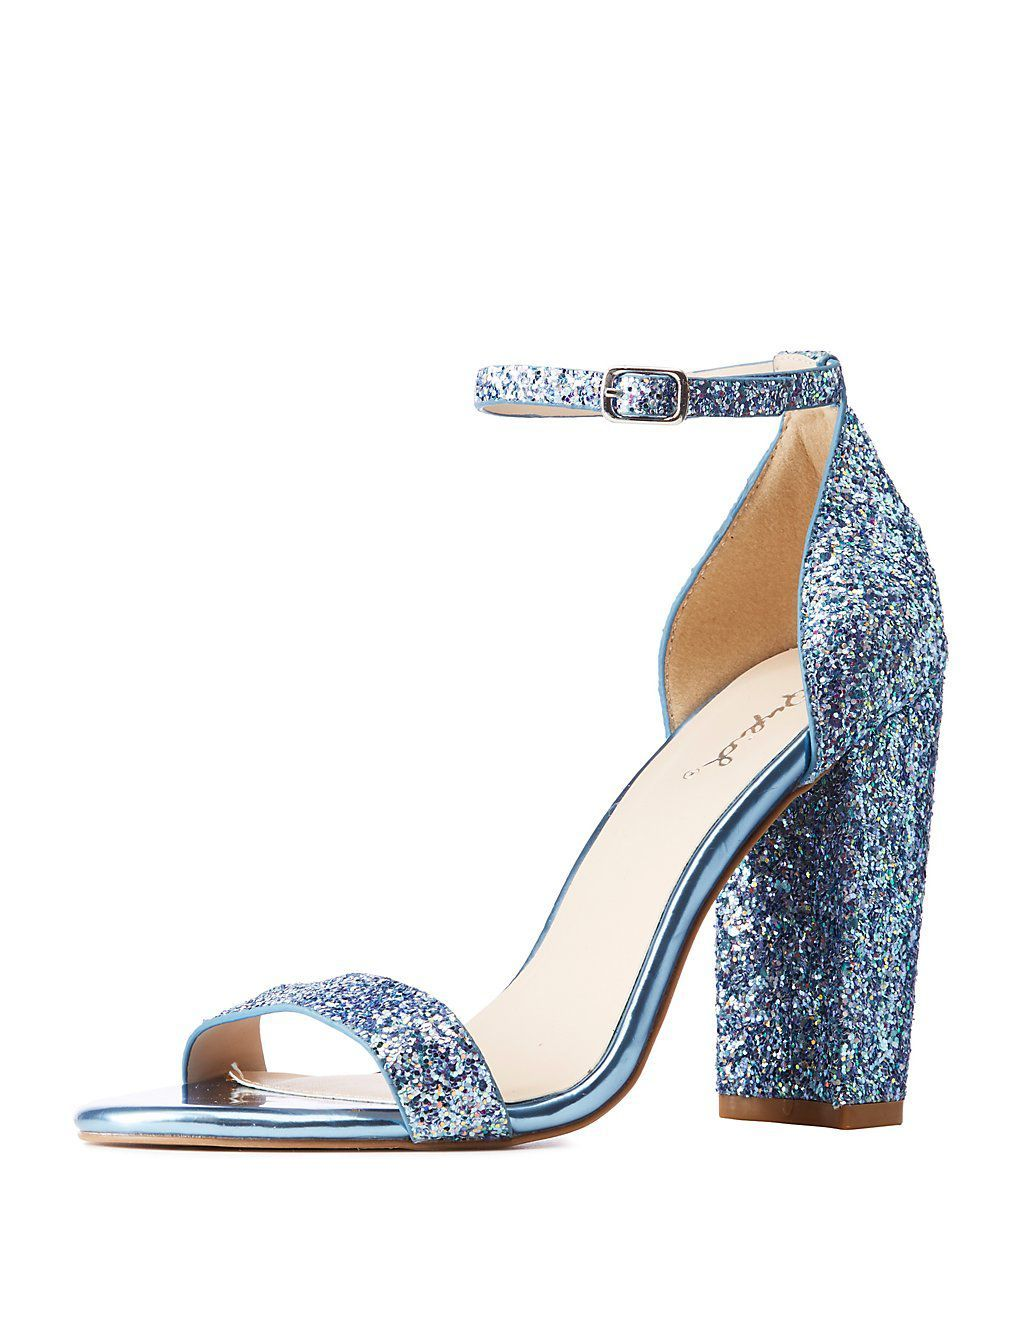 588503cab073 10 Best Prom Shoes 2019 - Trendy Shoes, Heels & Sandal Styles for Prom